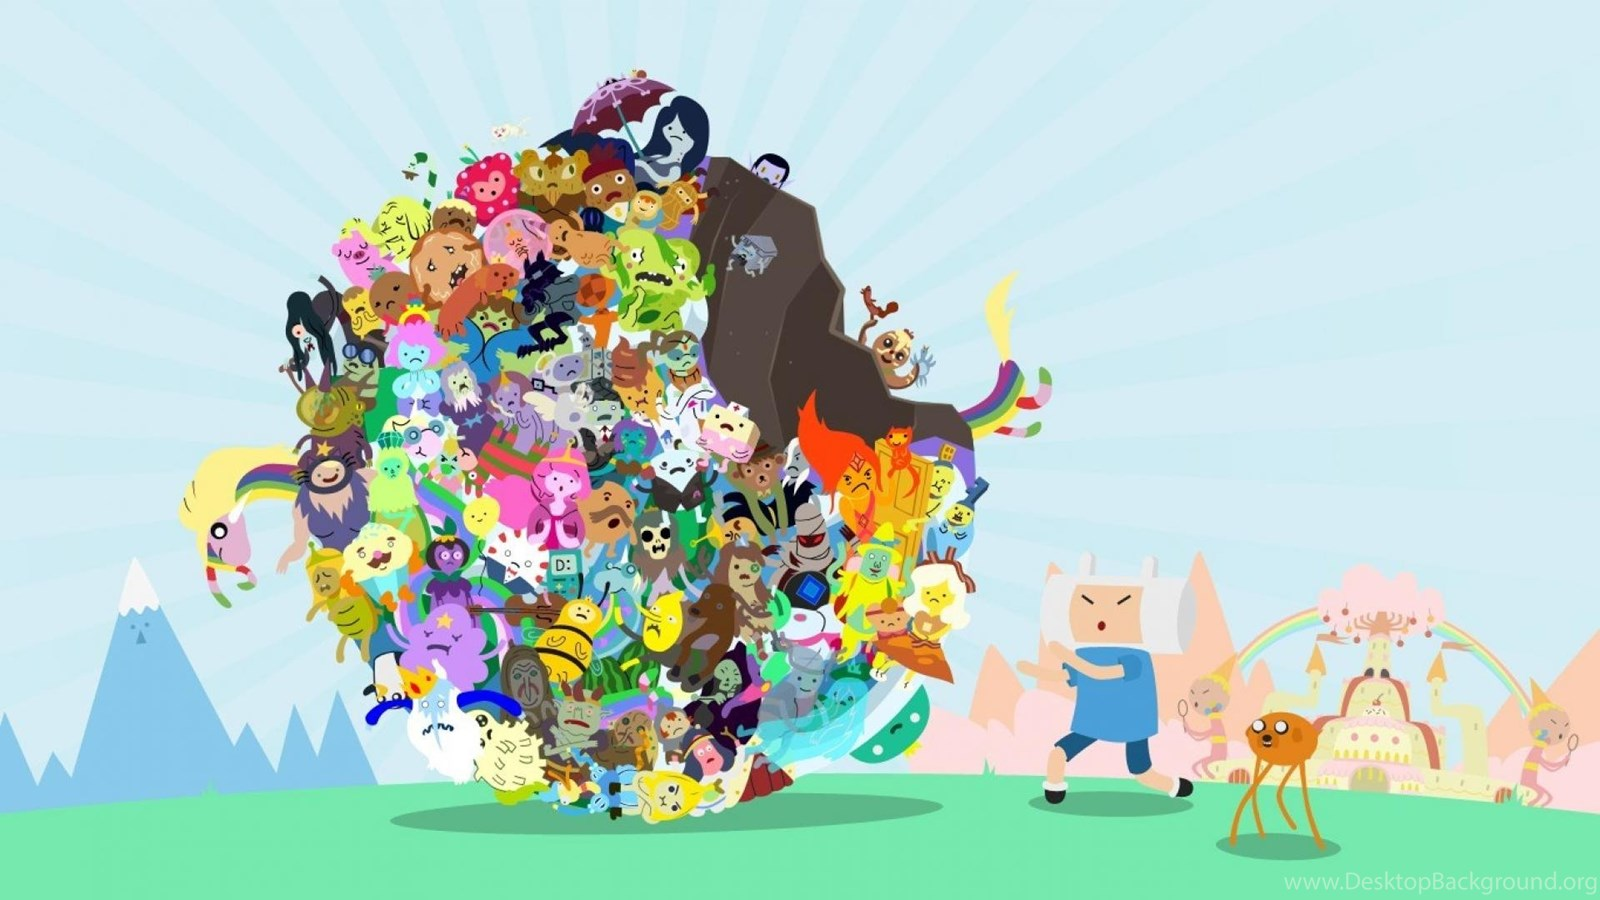 Parody adventure time katamari damacy wallpapers desktop background popular voltagebd Image collections